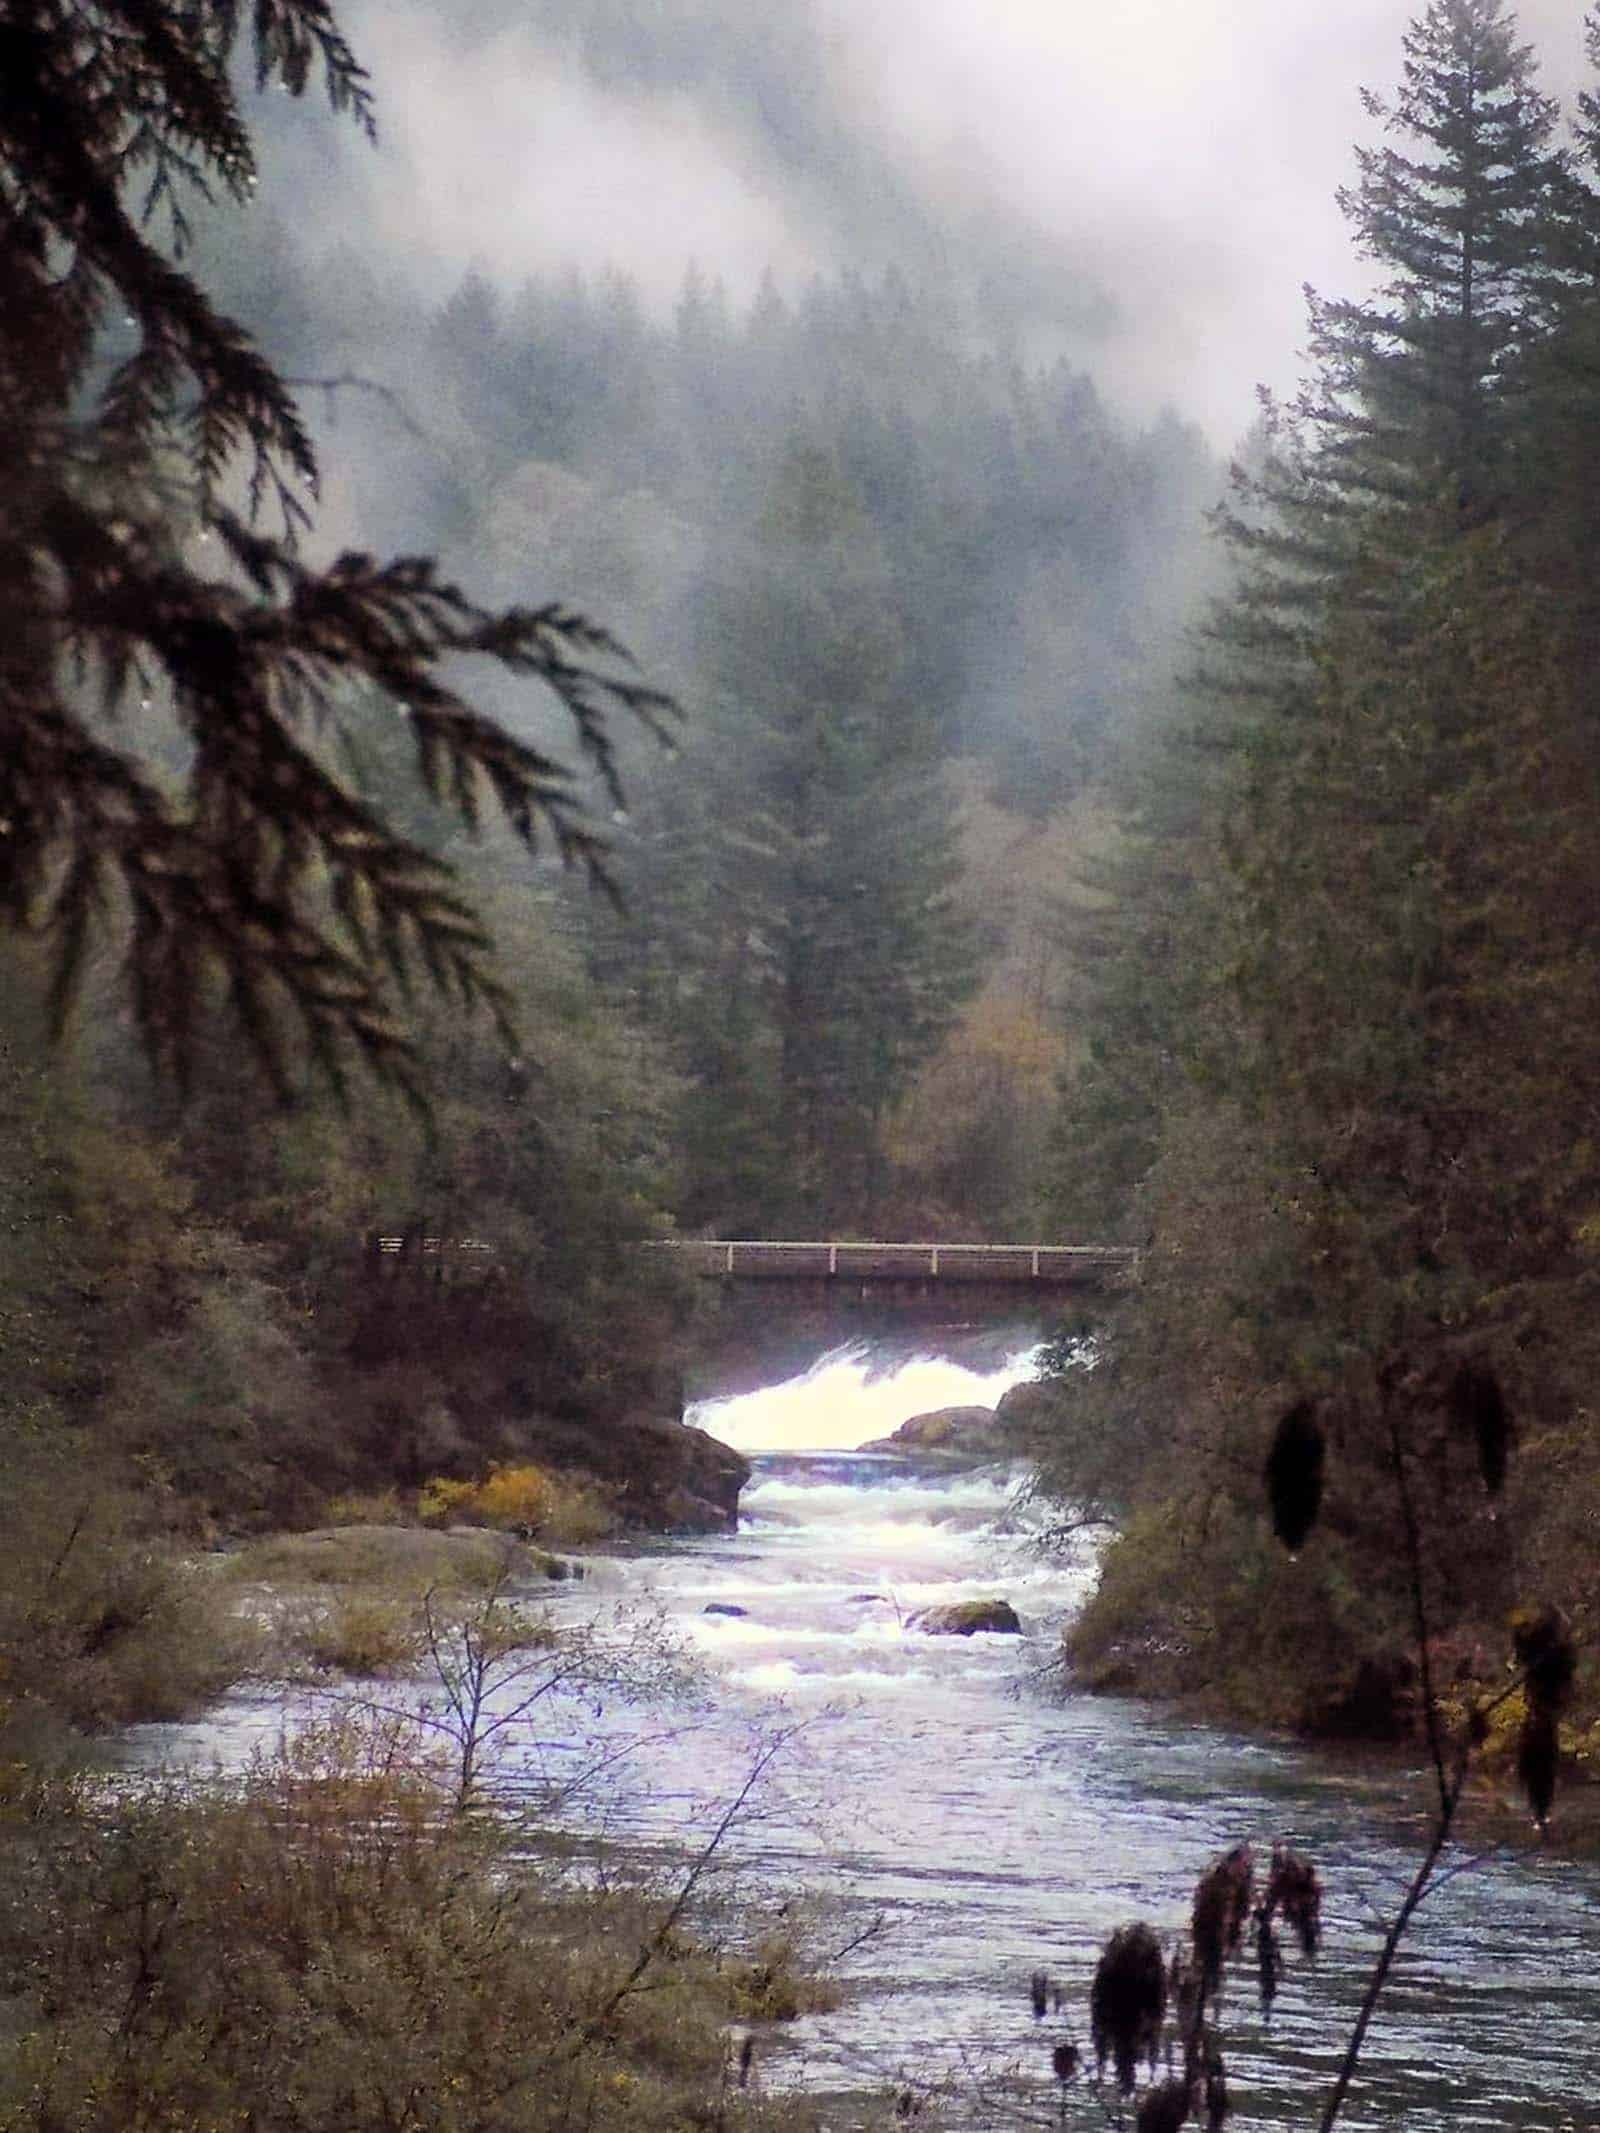 Washougal River seen from Camp Wa-Ri-Ki nestled in the misty foothills.